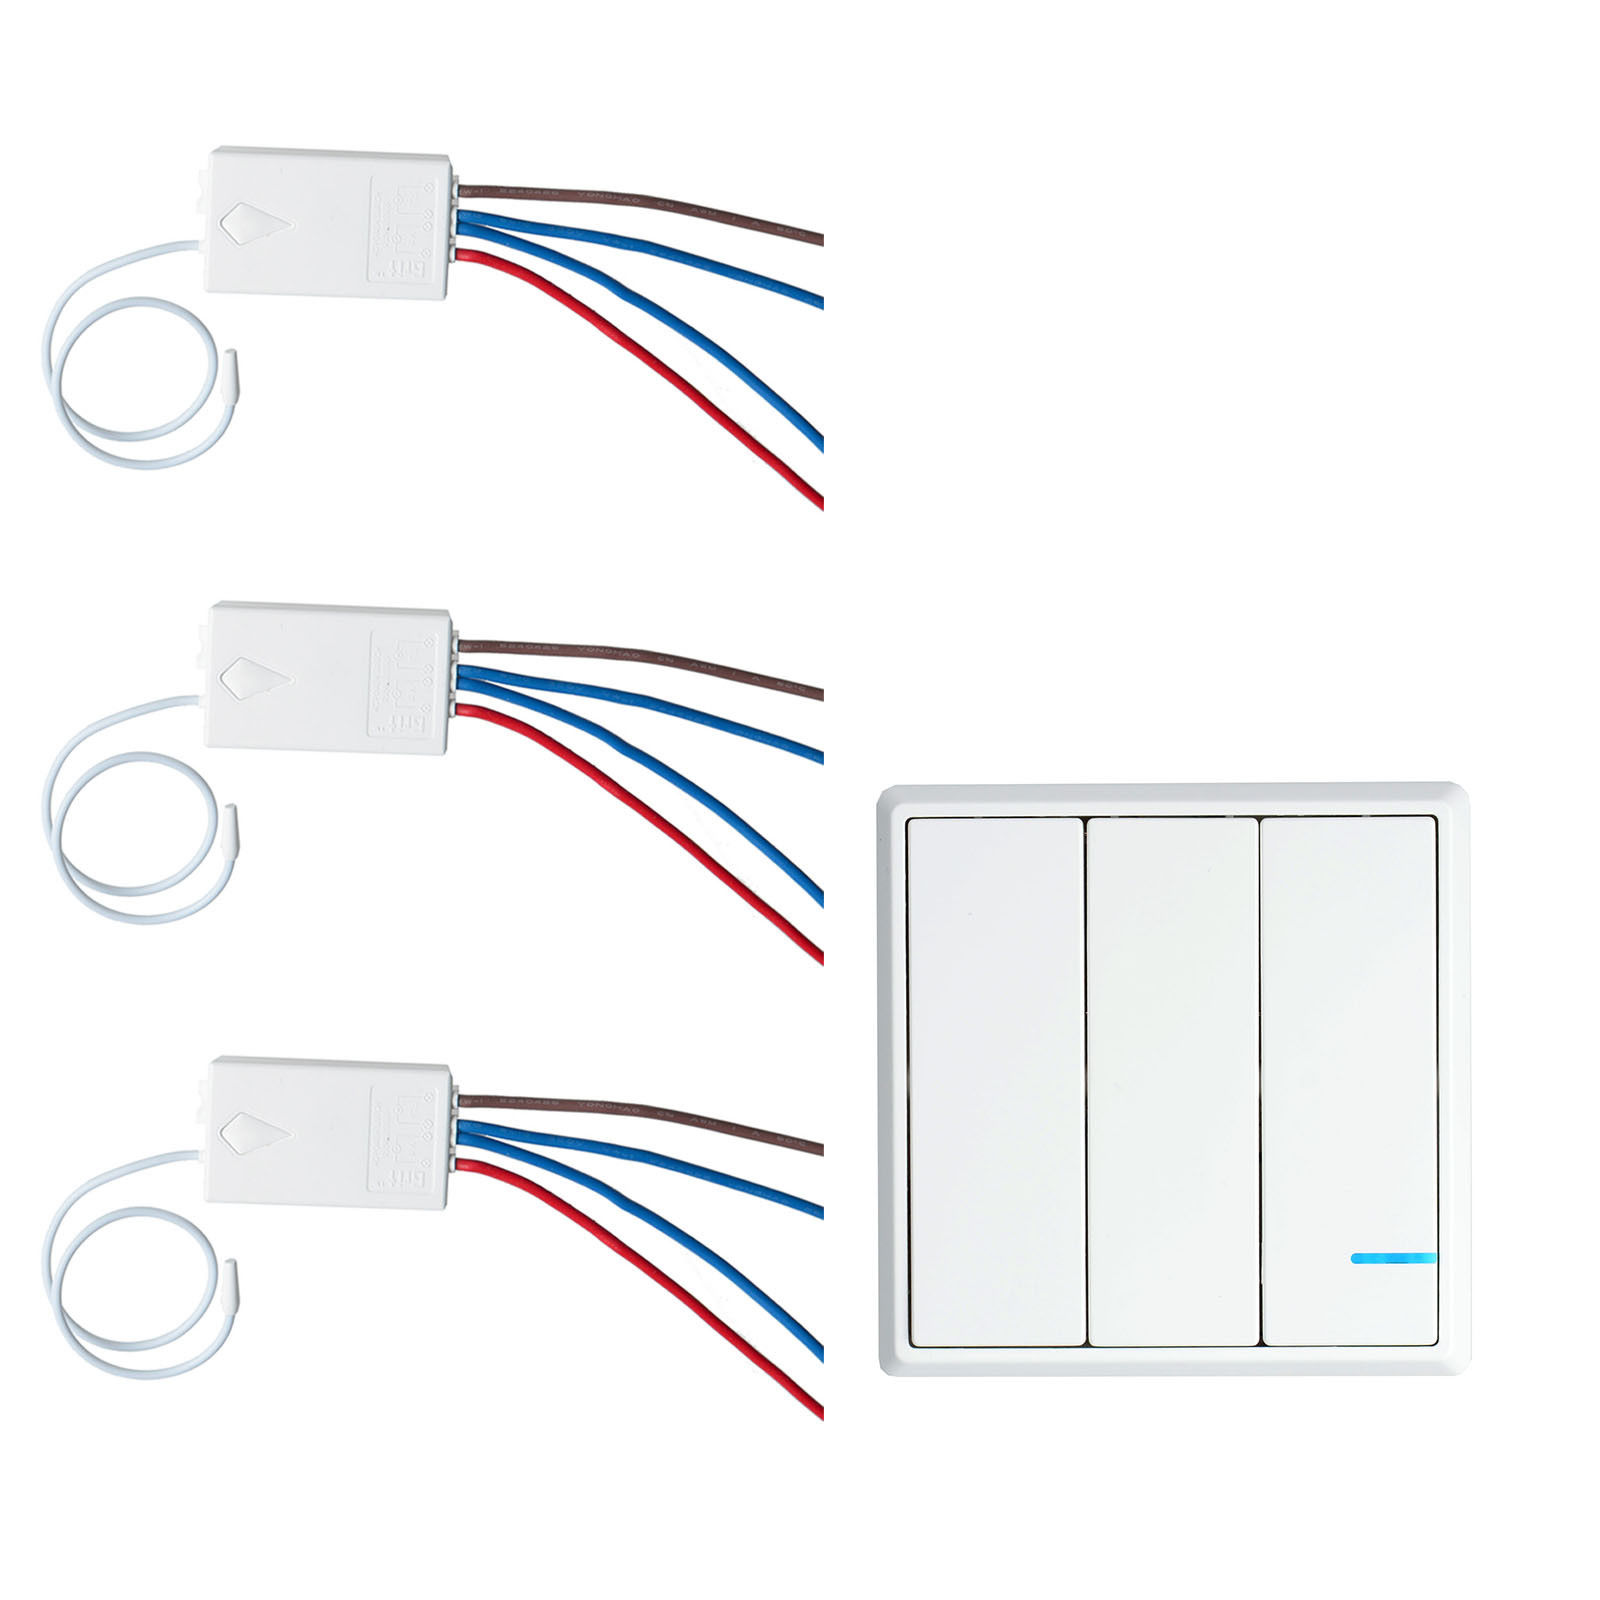 GREENCYCLE 1PK 3-Way Switch 3PK Wireless Receiver Control Lamps Fans Devices Appliances On/off